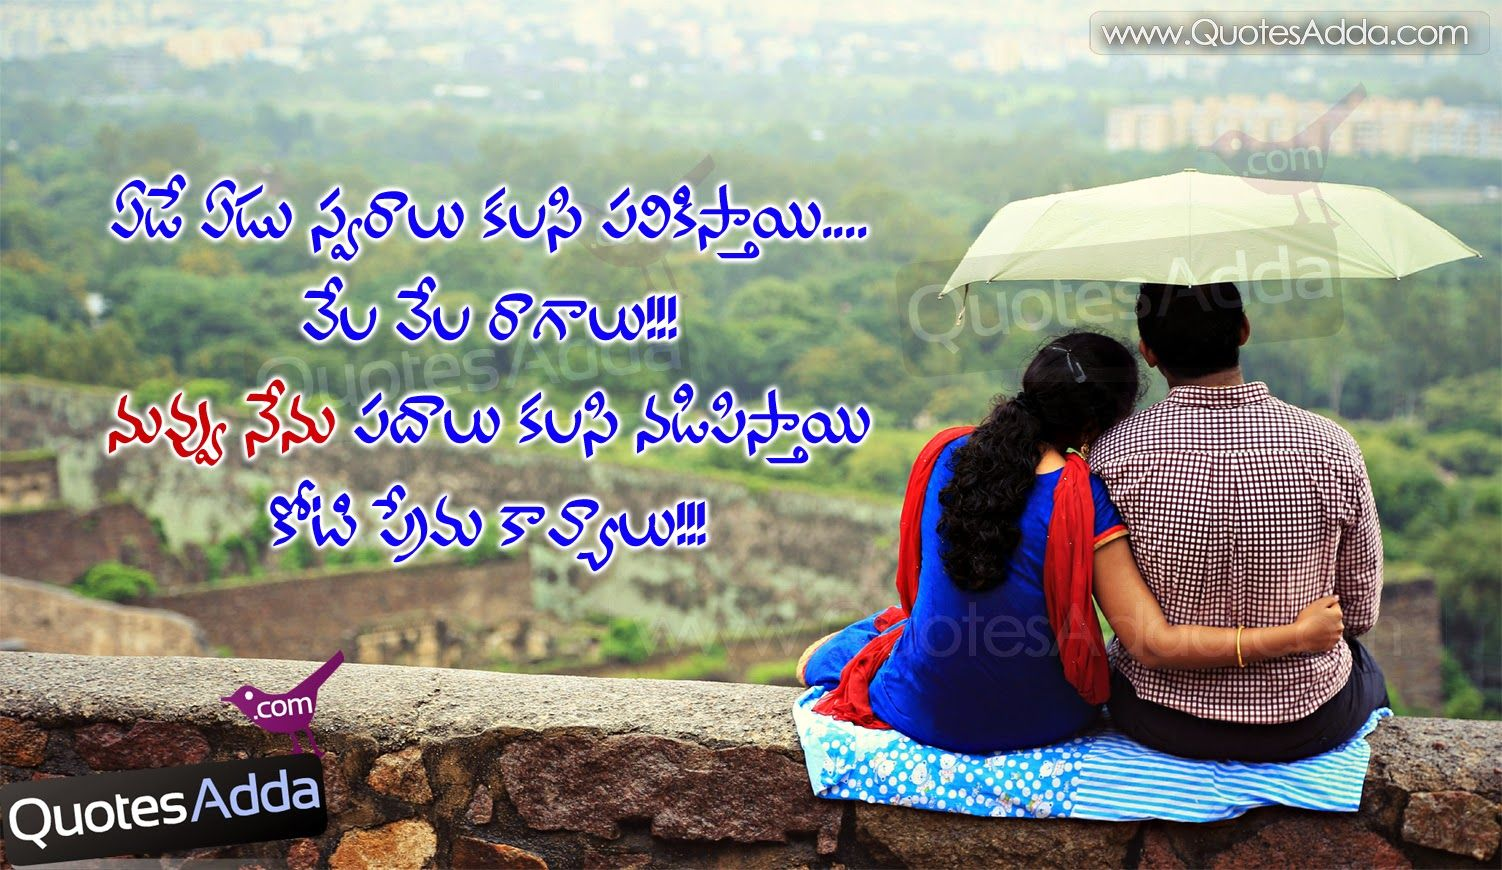 Telugu Love Quotes Brilliant Funny Love Proposal Quotes Best Telugu Beautiful Love Quotations